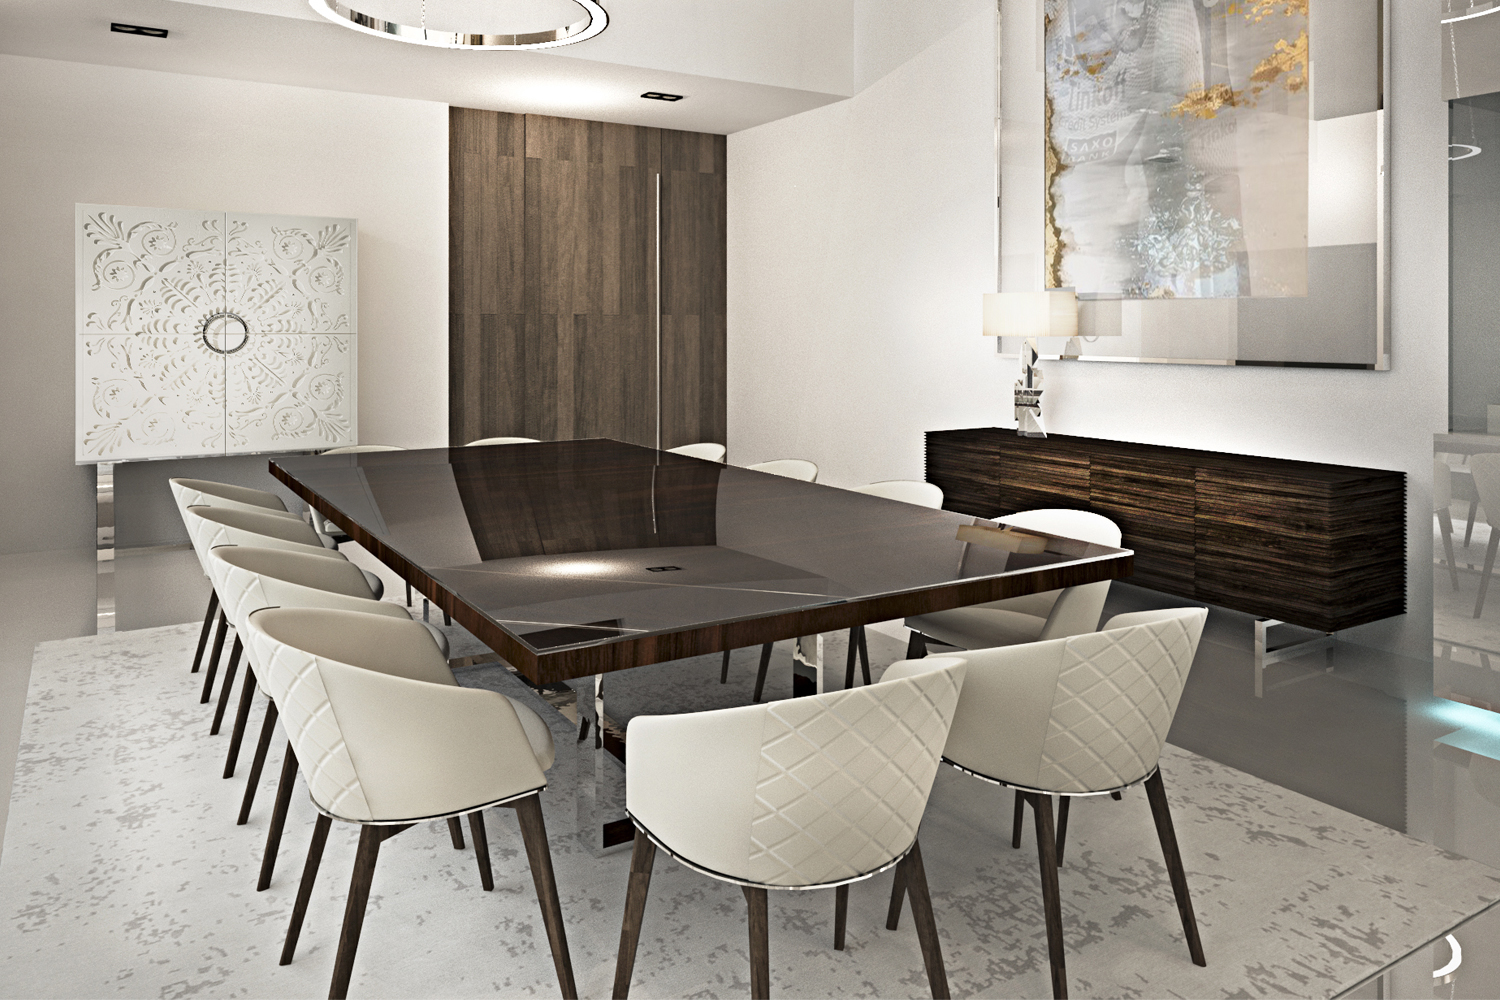 Design Collection Modern Dining Room Tables Chairs 50 New Inspiration